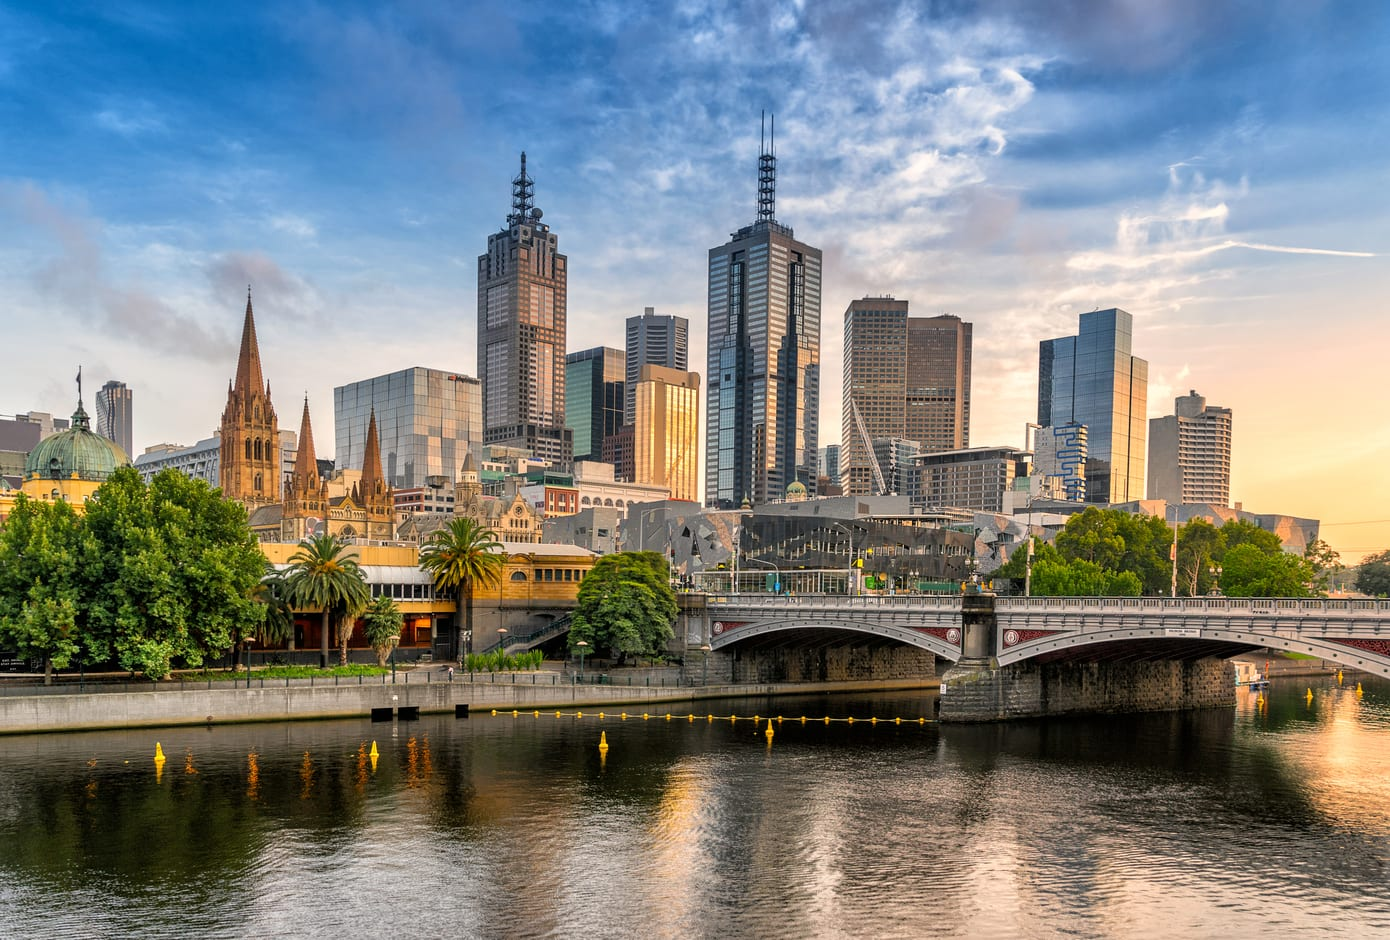 View of Melbourne's skyline at dusk, in Australia.